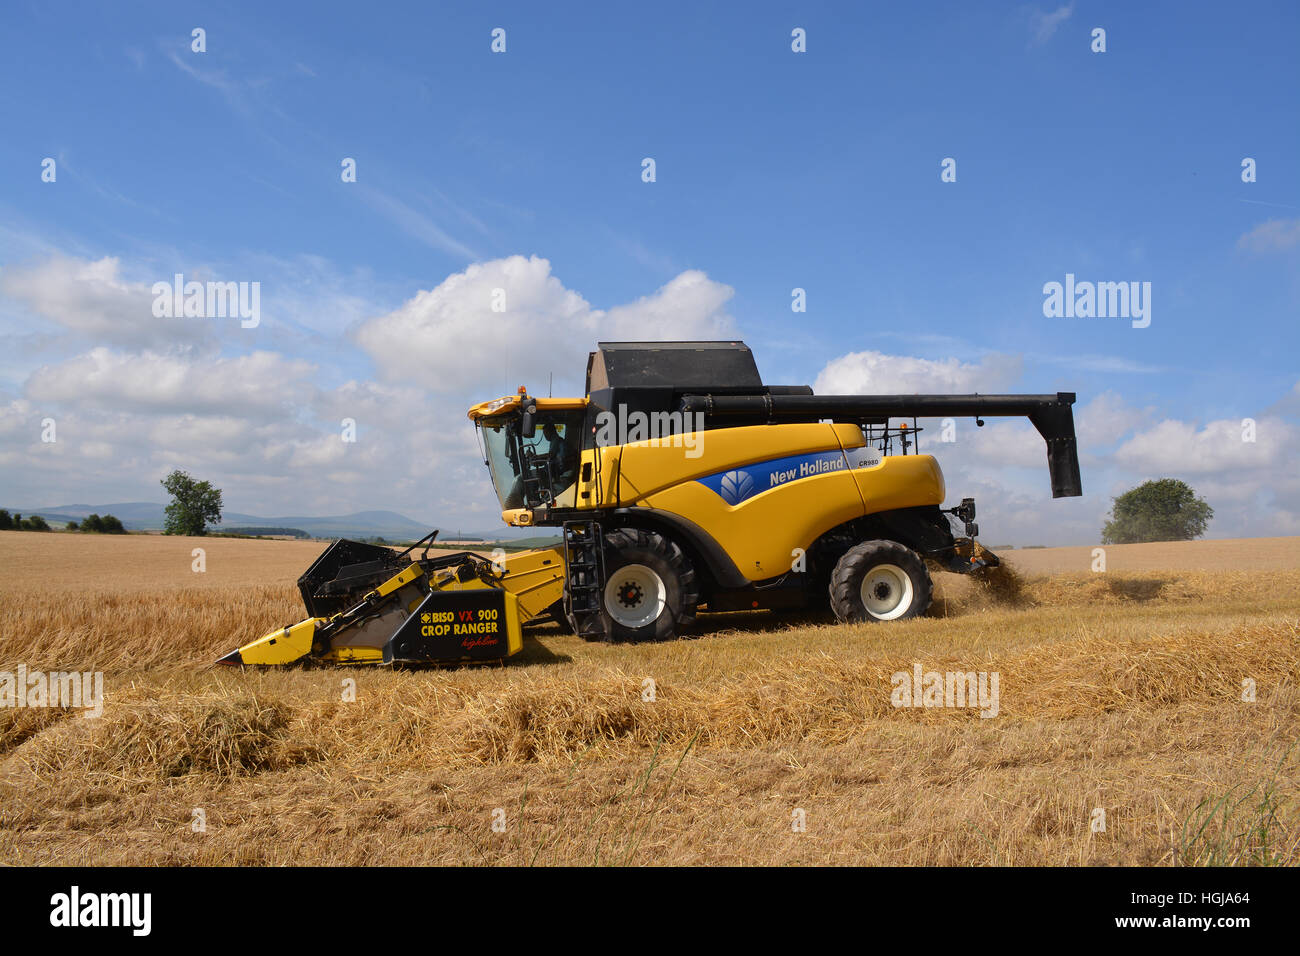 New Holland CR980 Combine Harvester - Stock Image